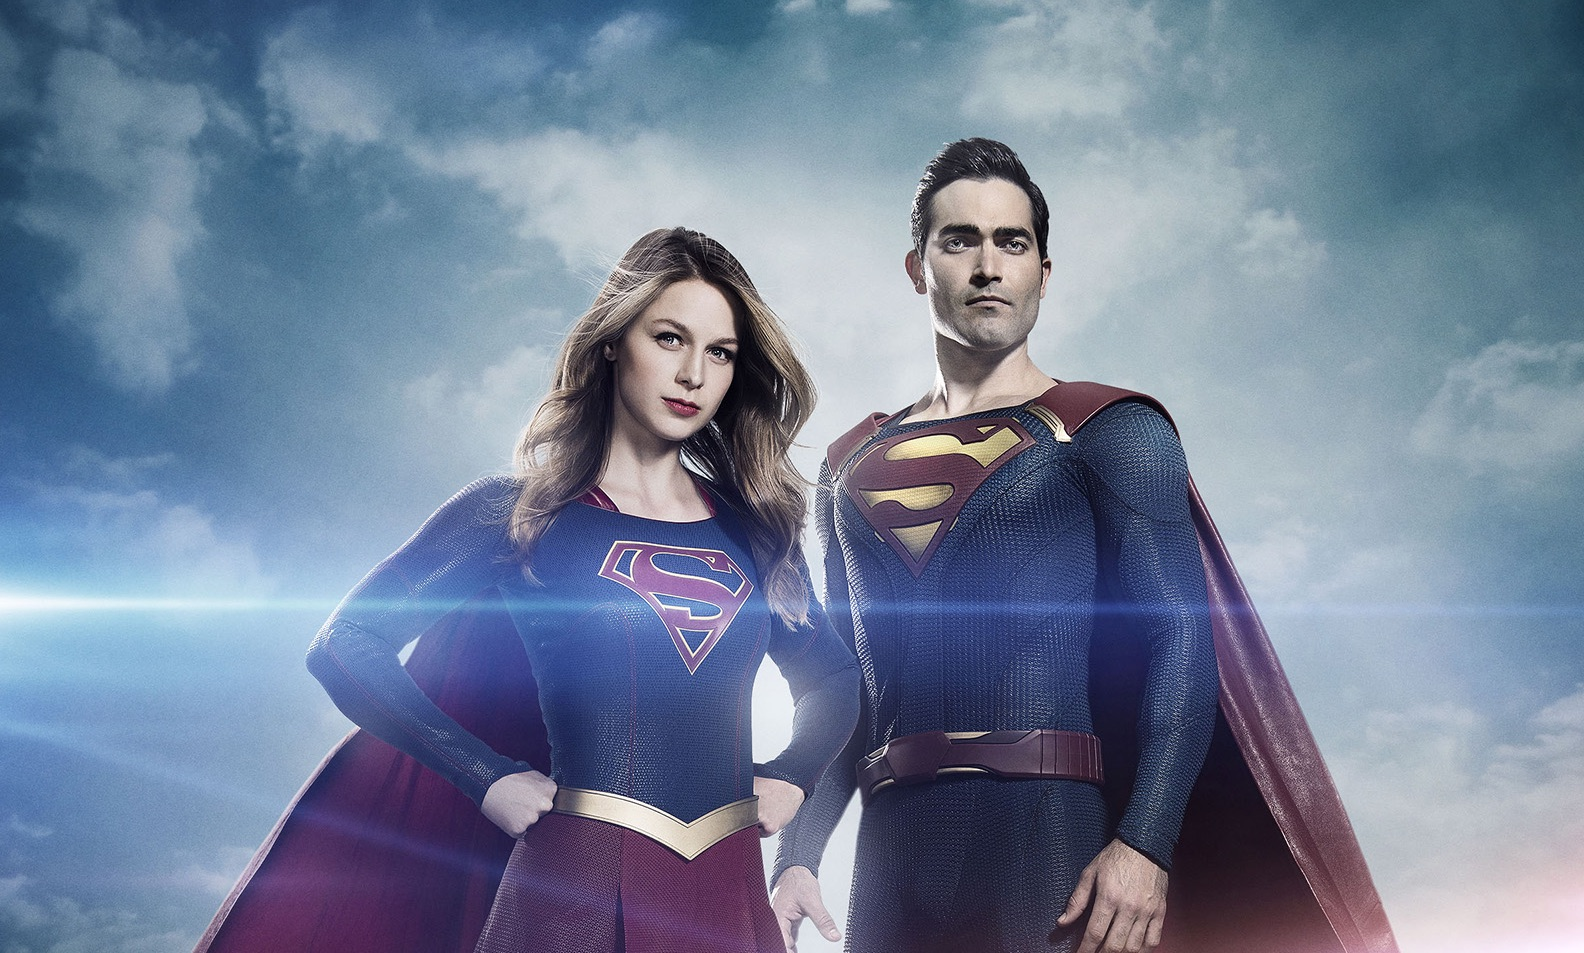 Supergirl\': Tyler Hoechlin in Costume as Superman | IndieWire